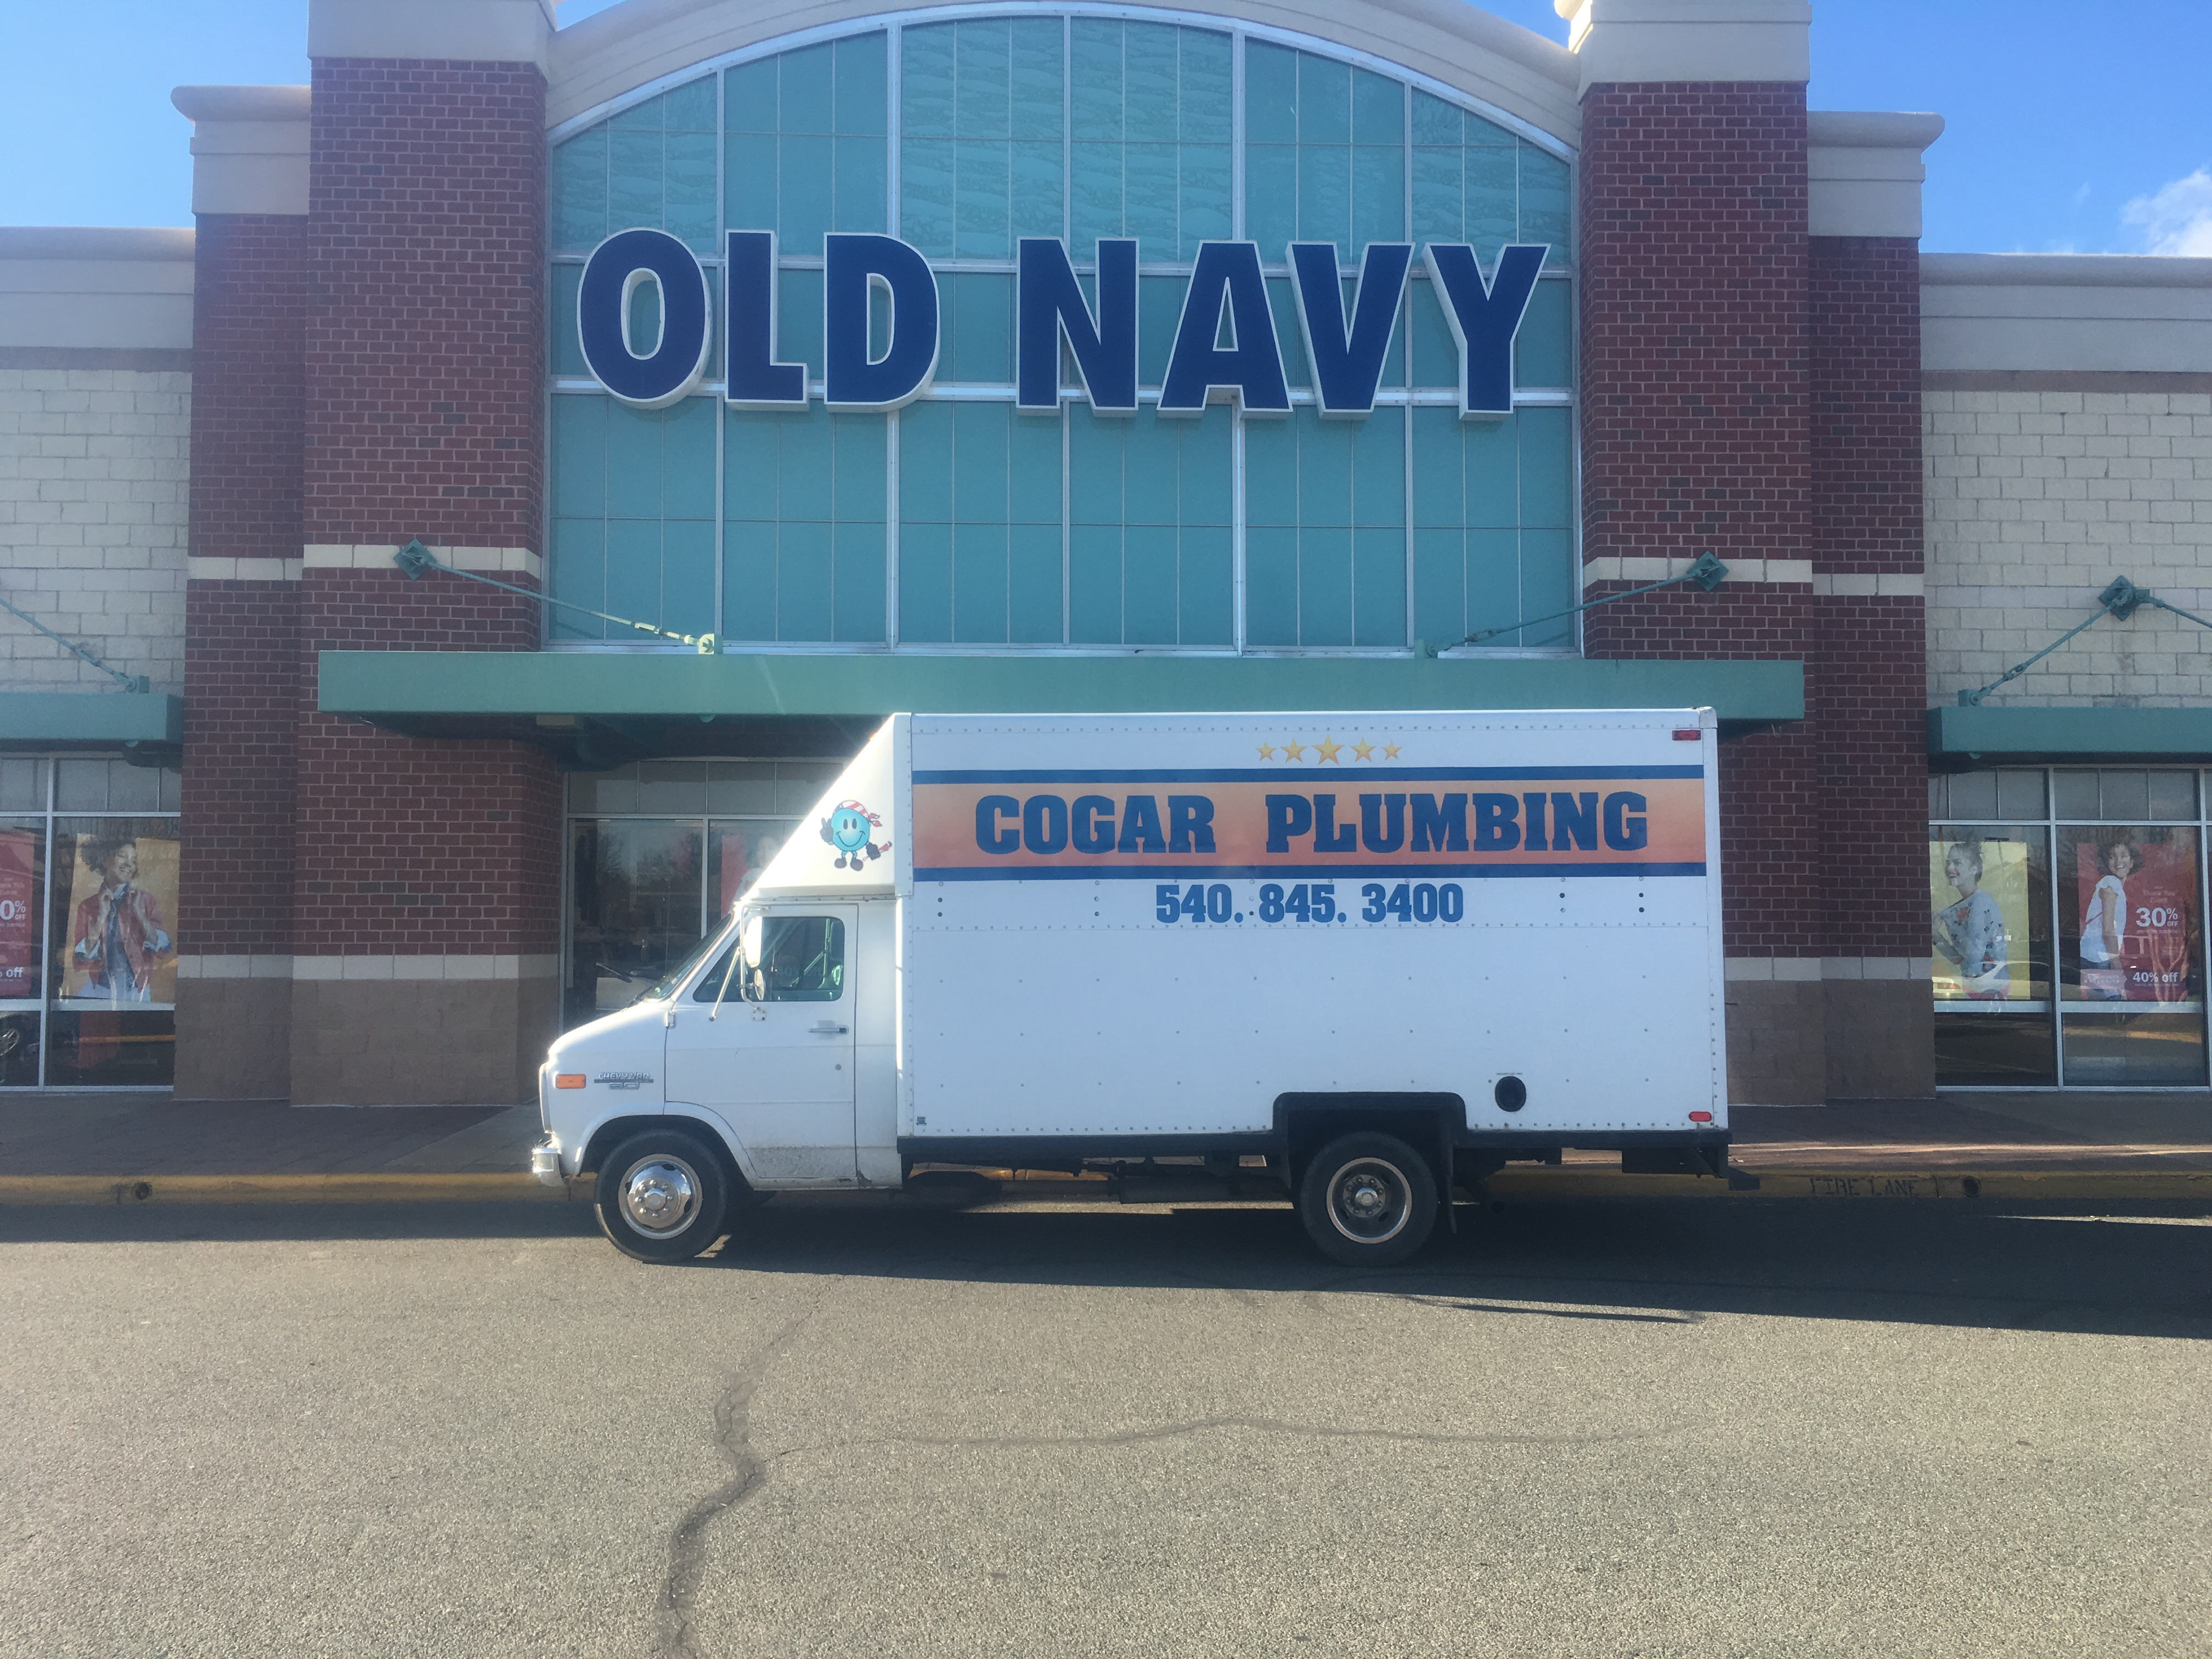 Plumbing truck at old navy